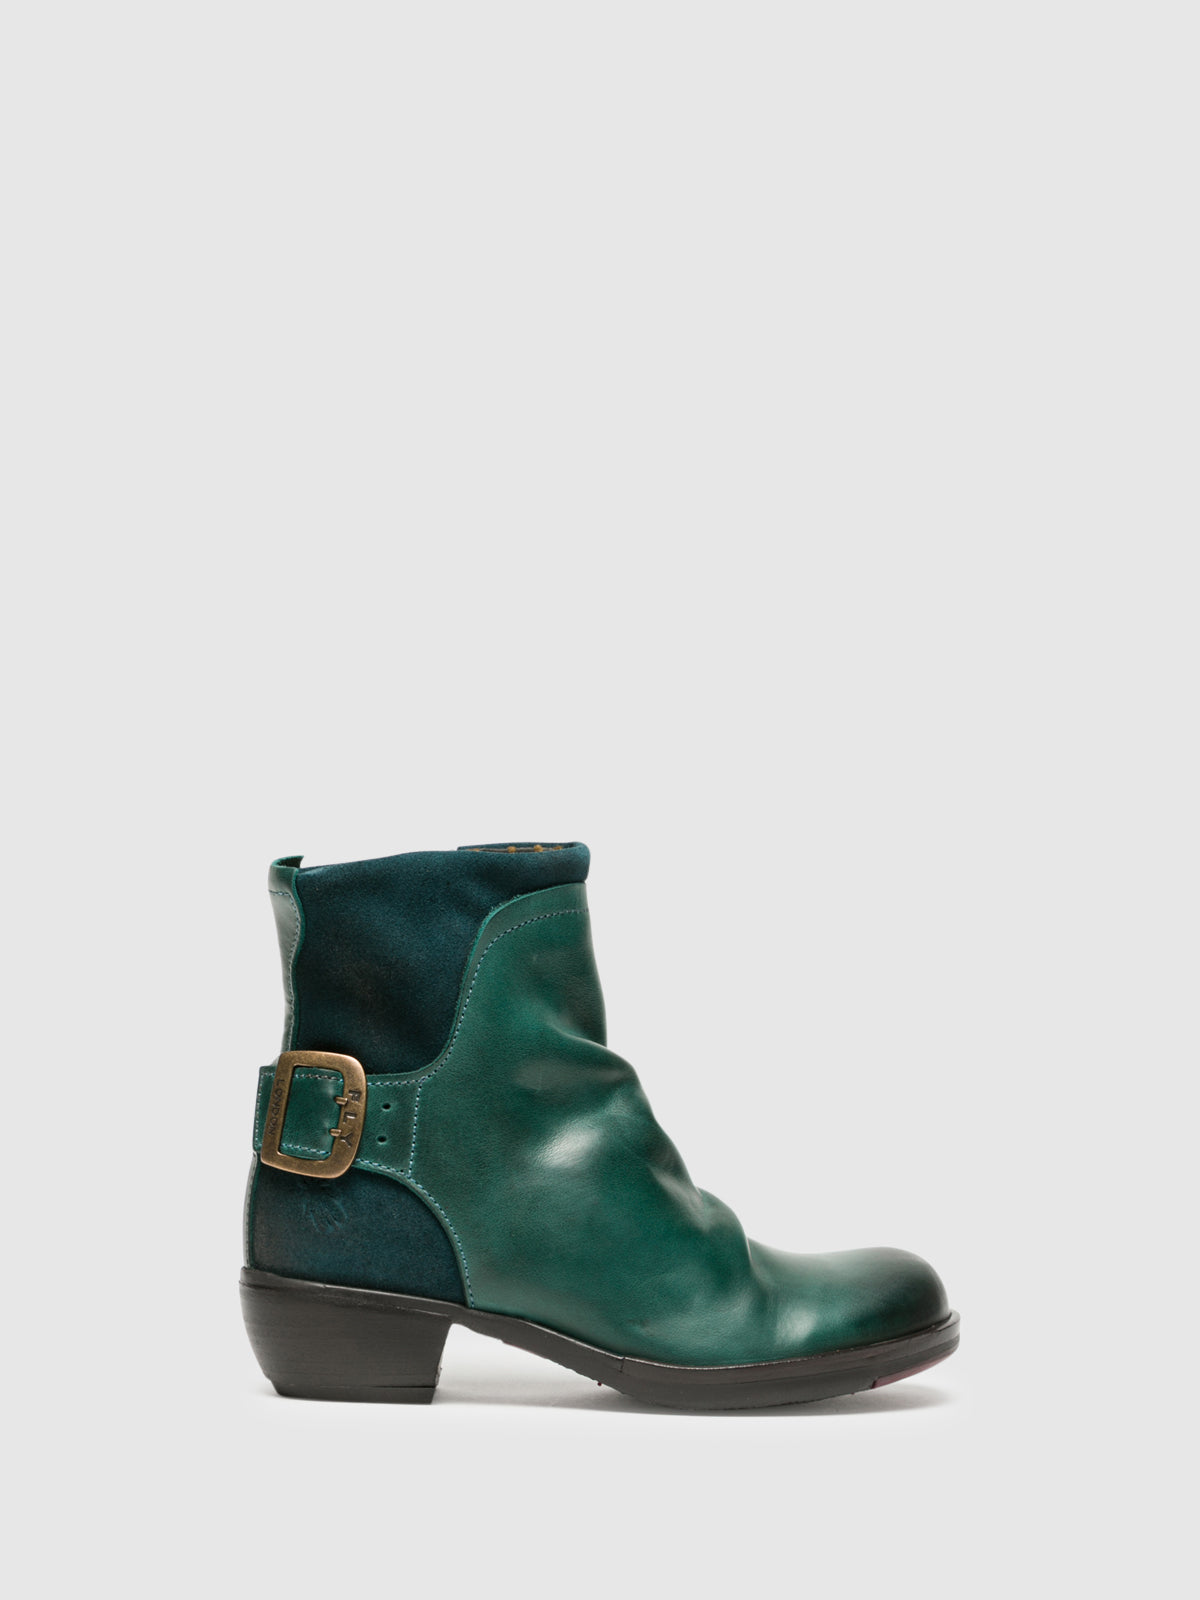 Fly London SeaGreen Buckle Ankle Boots